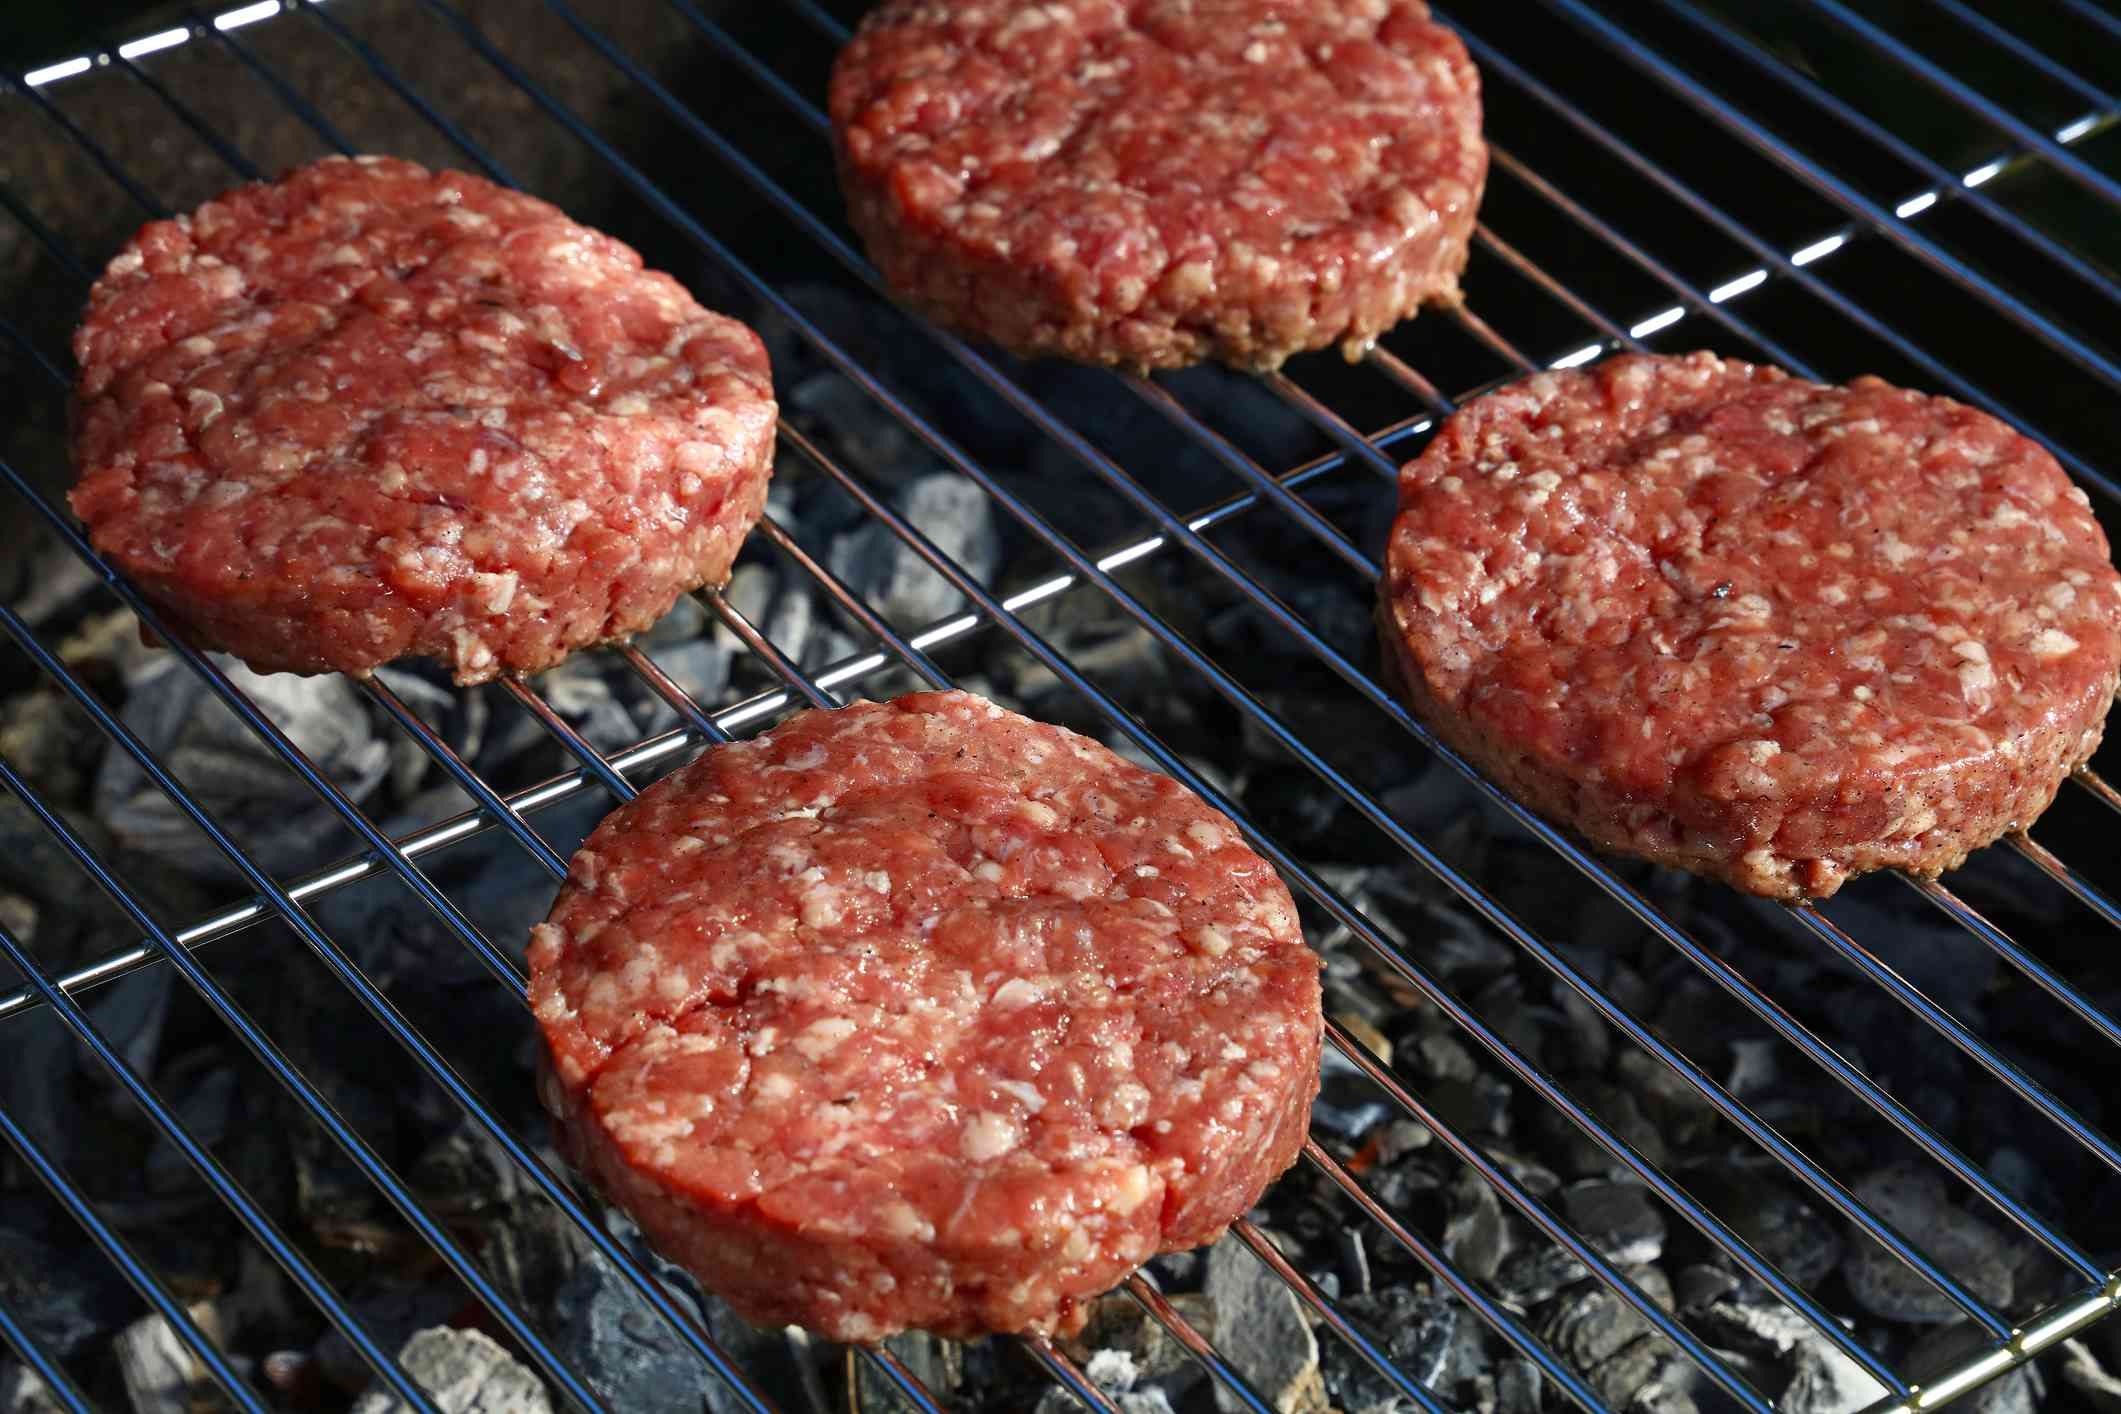 Burger on a clean grate